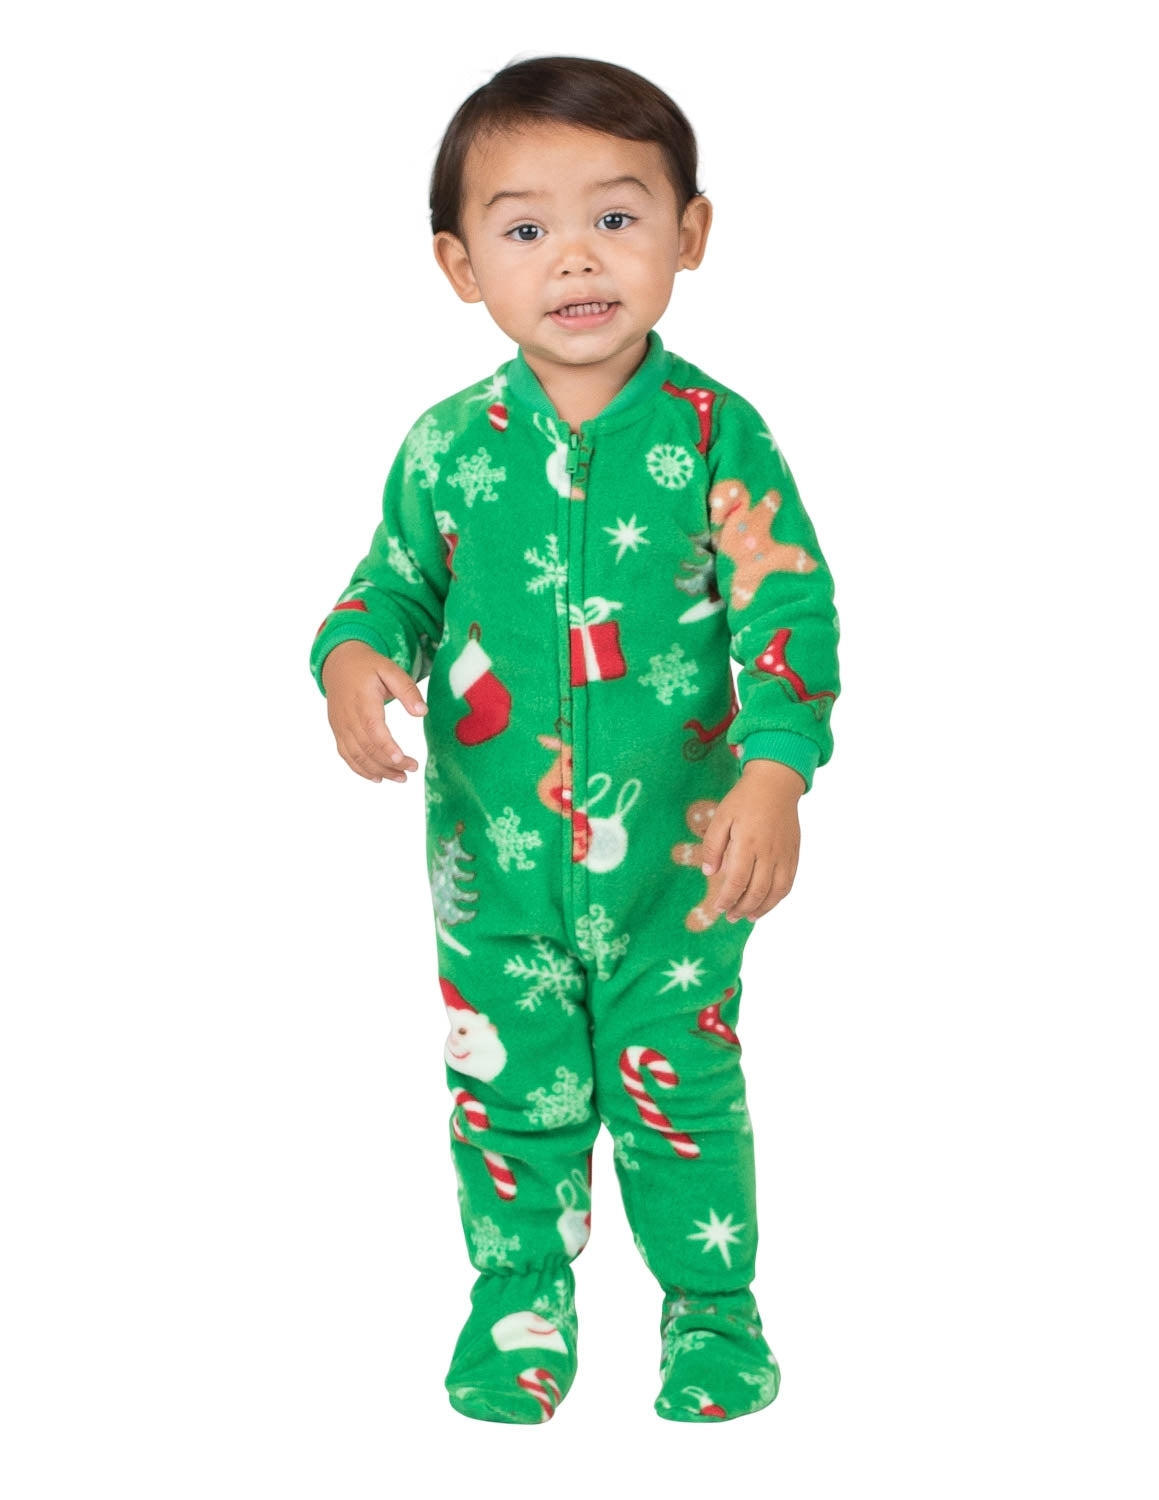 Tis The Season Infant Fleece Onesie